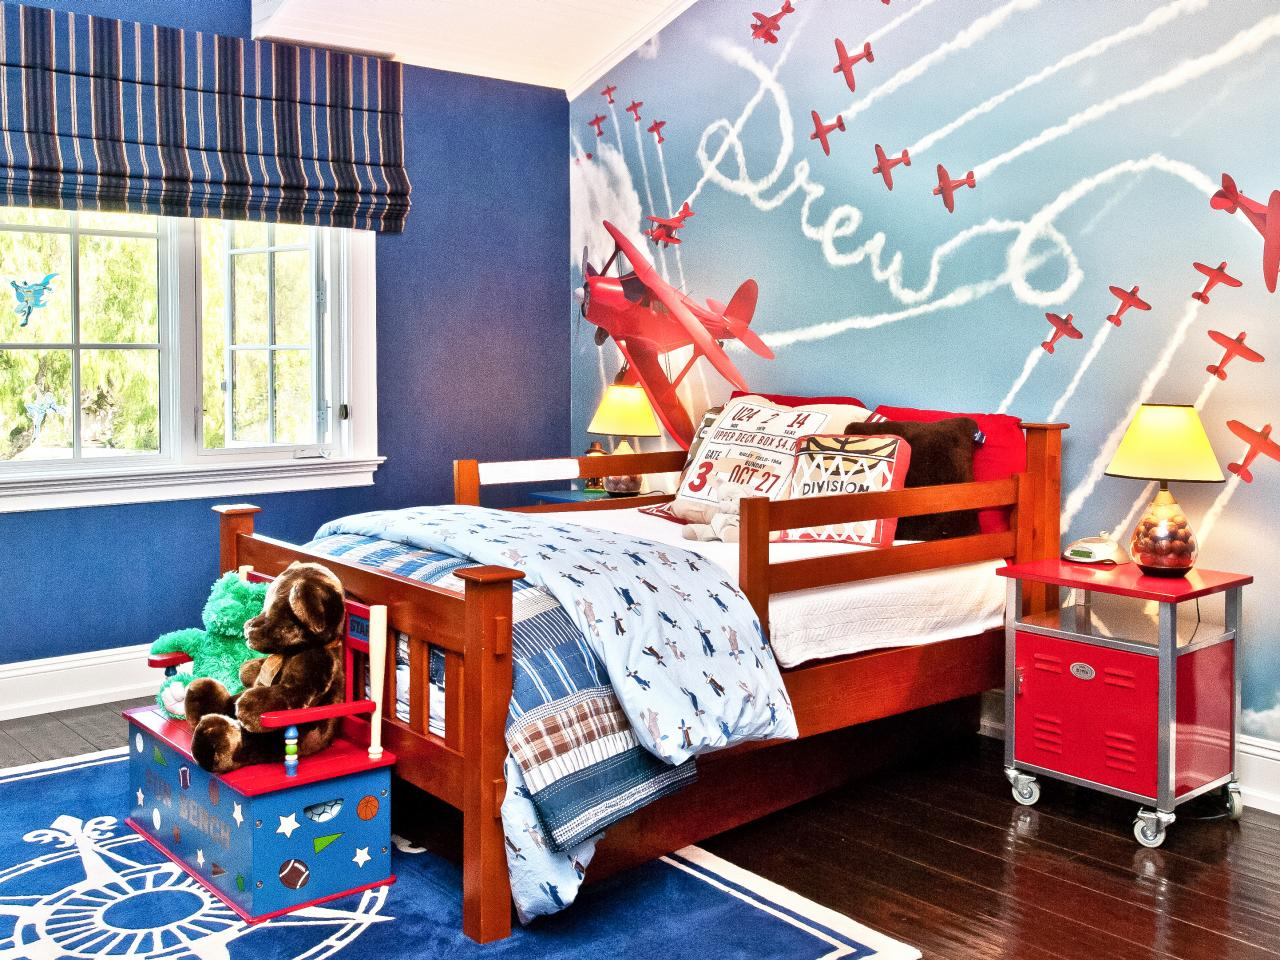 Disney Peter Pan Room Decor